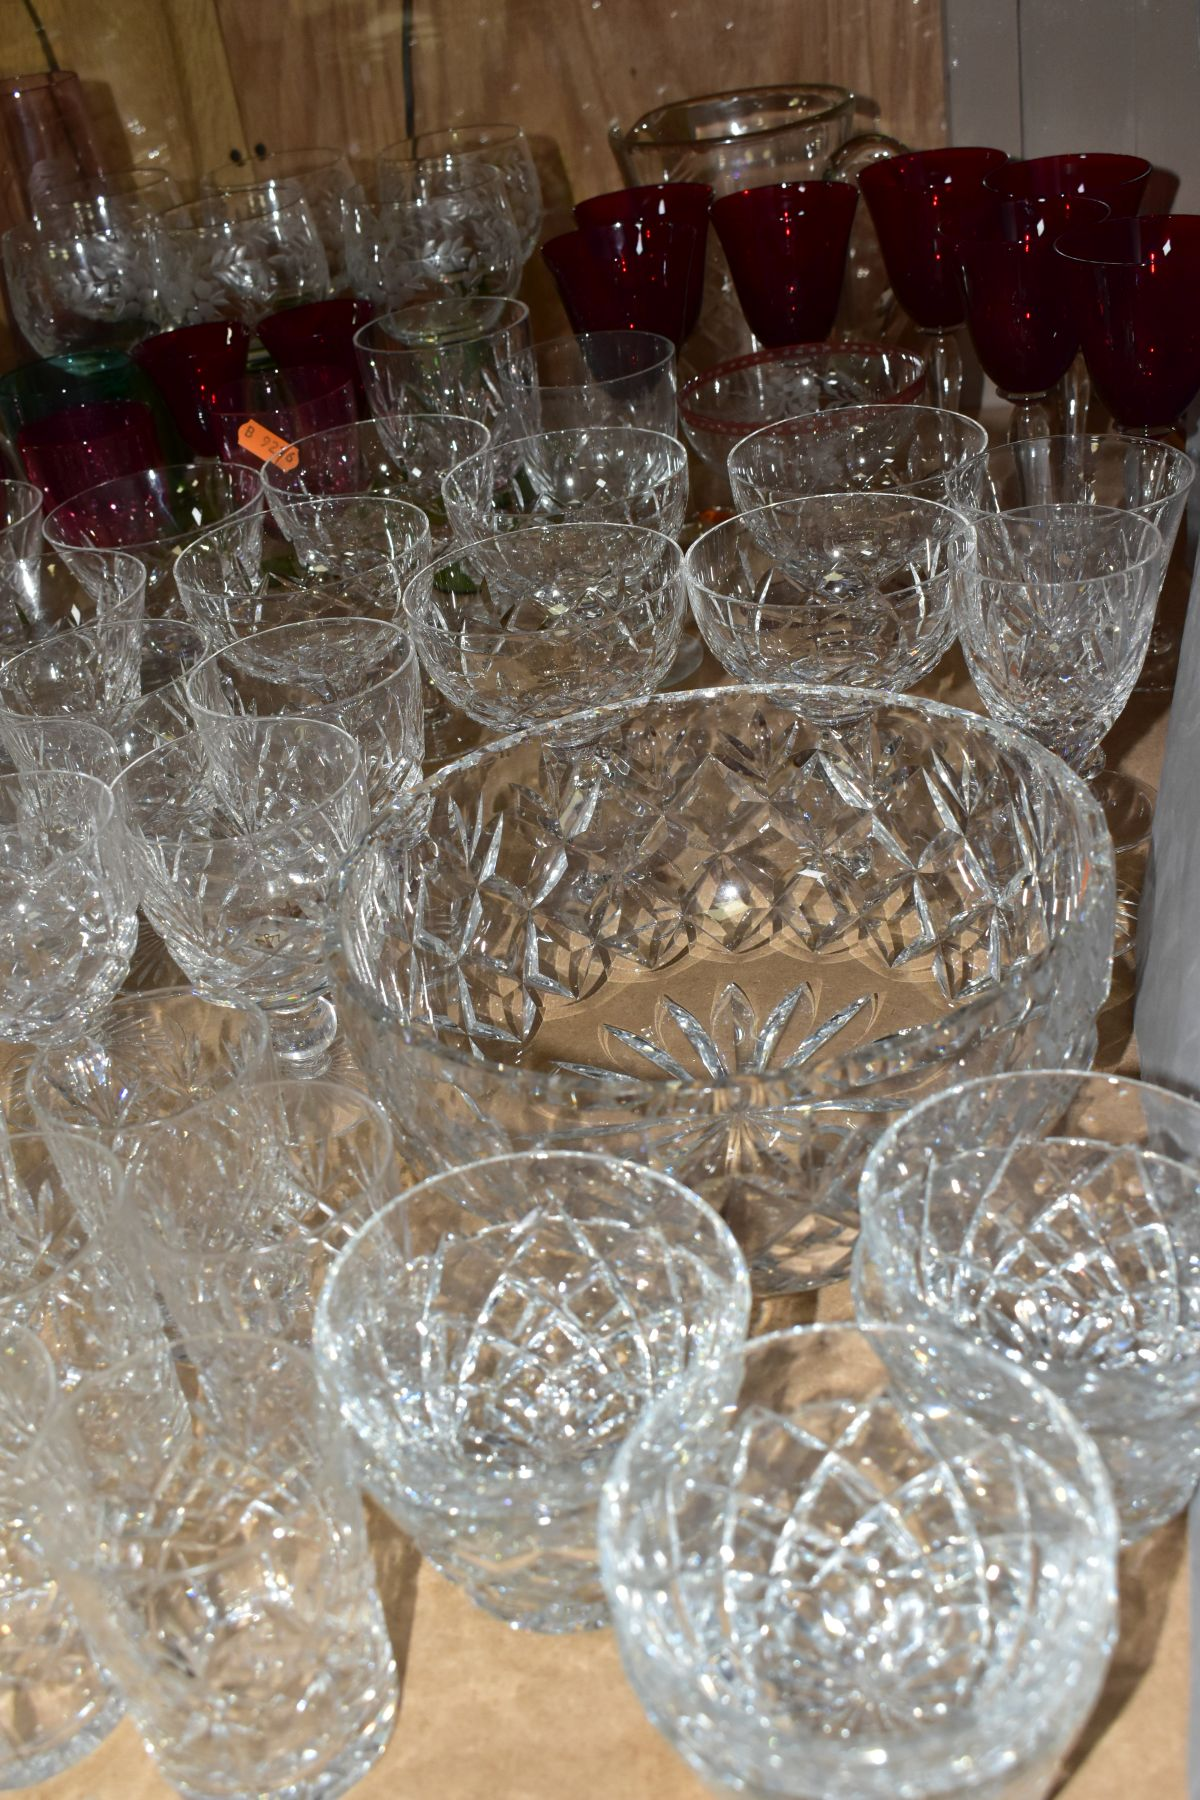 A QUANTITY OF GLASSWARE, including a Waterford Crystal quartz mantel clock, height 11cm, coloured - Image 4 of 9